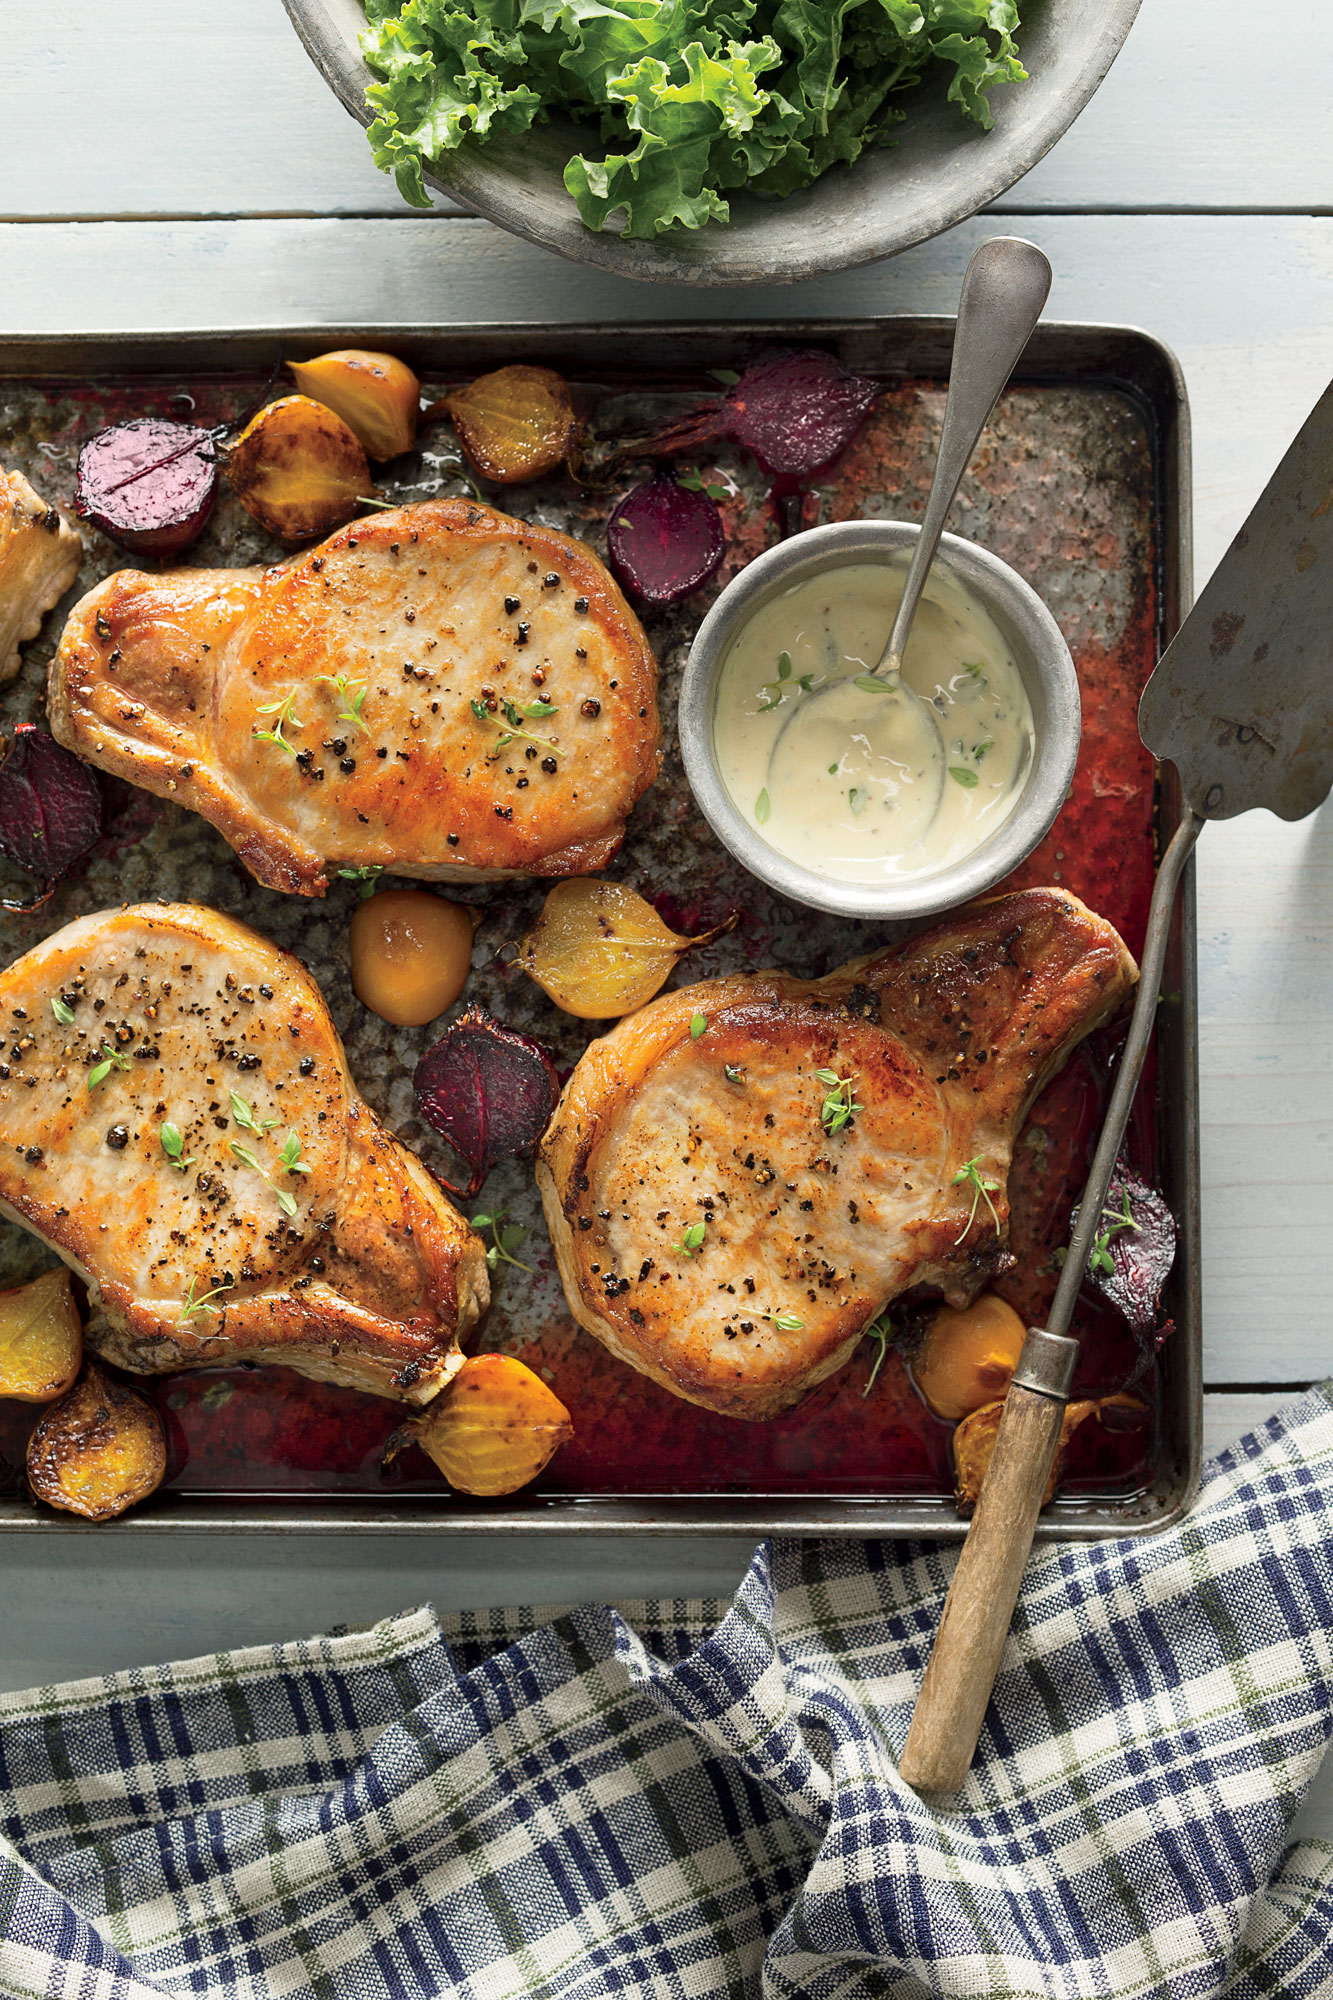 Roasted Pork Chops with Beets and Kale image